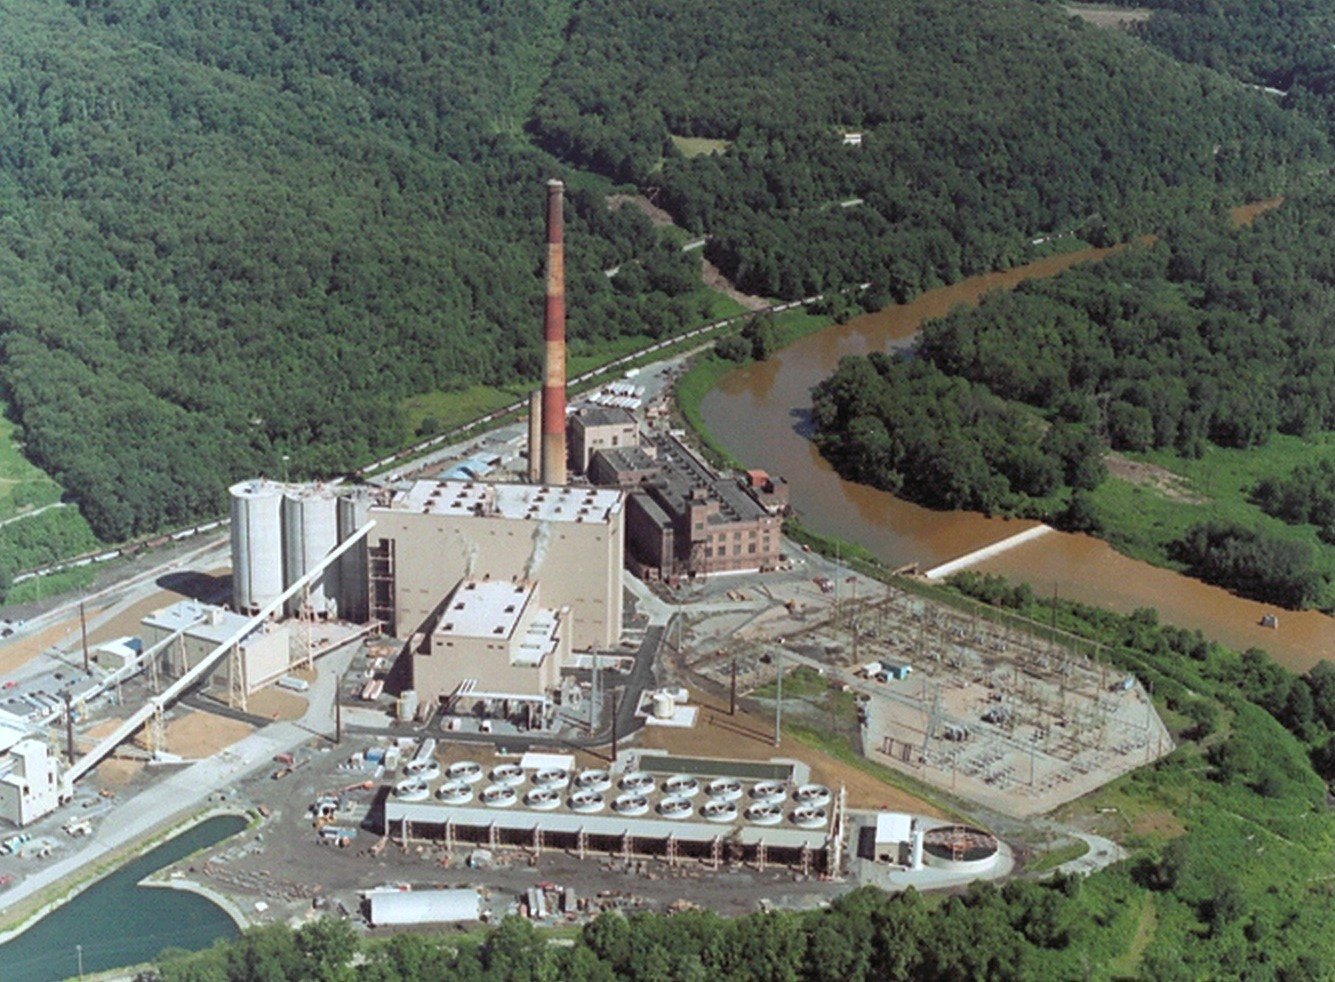 Seward Power Plant in New Florence The 525 megawatt waste coal plant built in 2004.